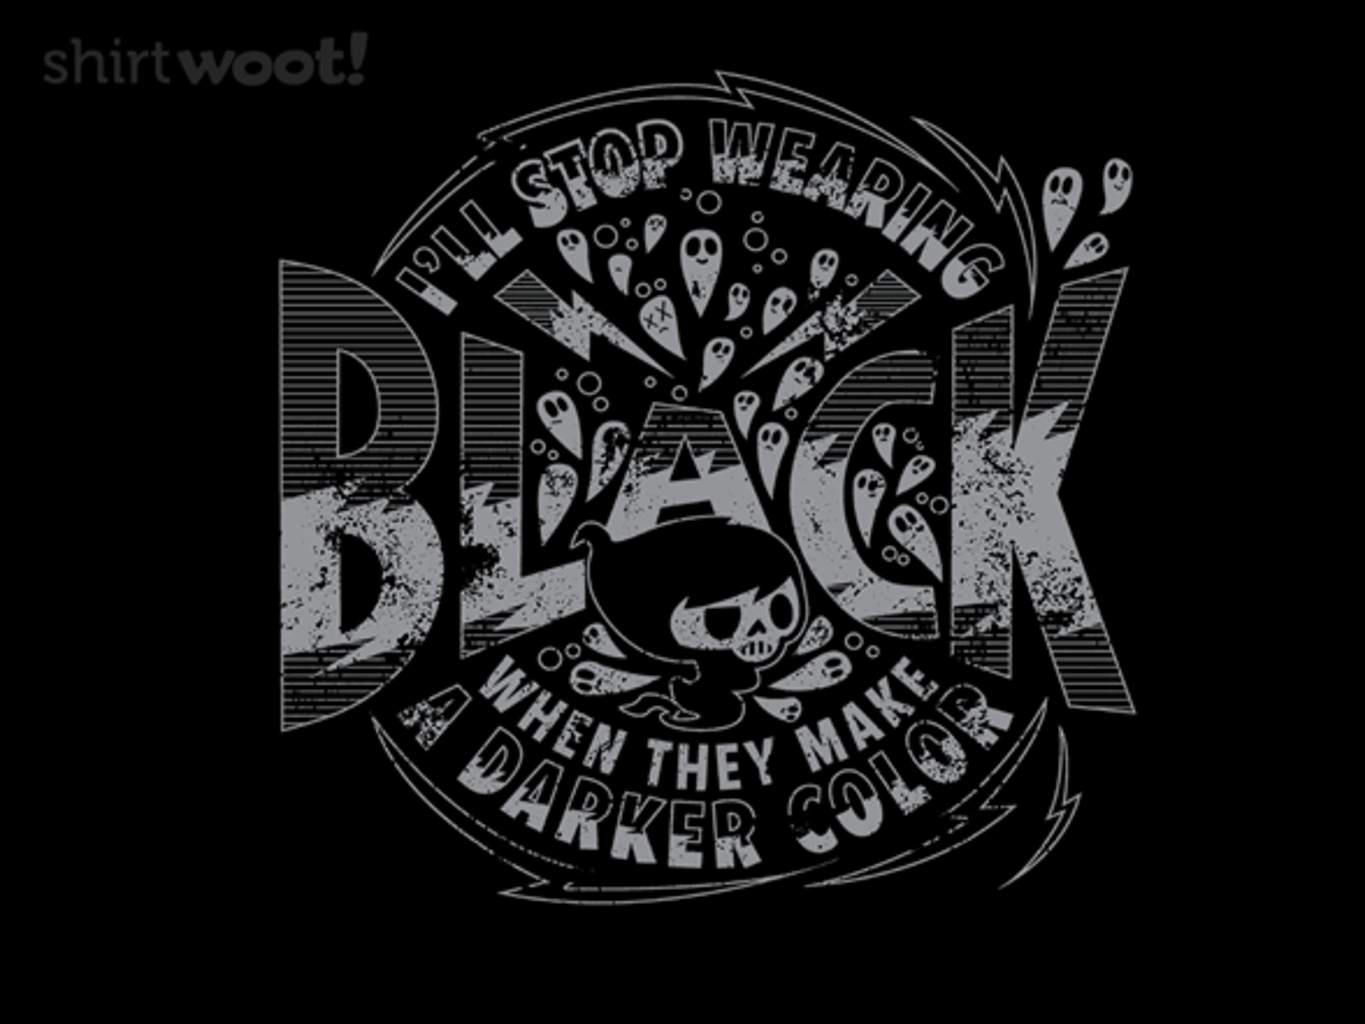 Woot!: All My Shirts Are Black